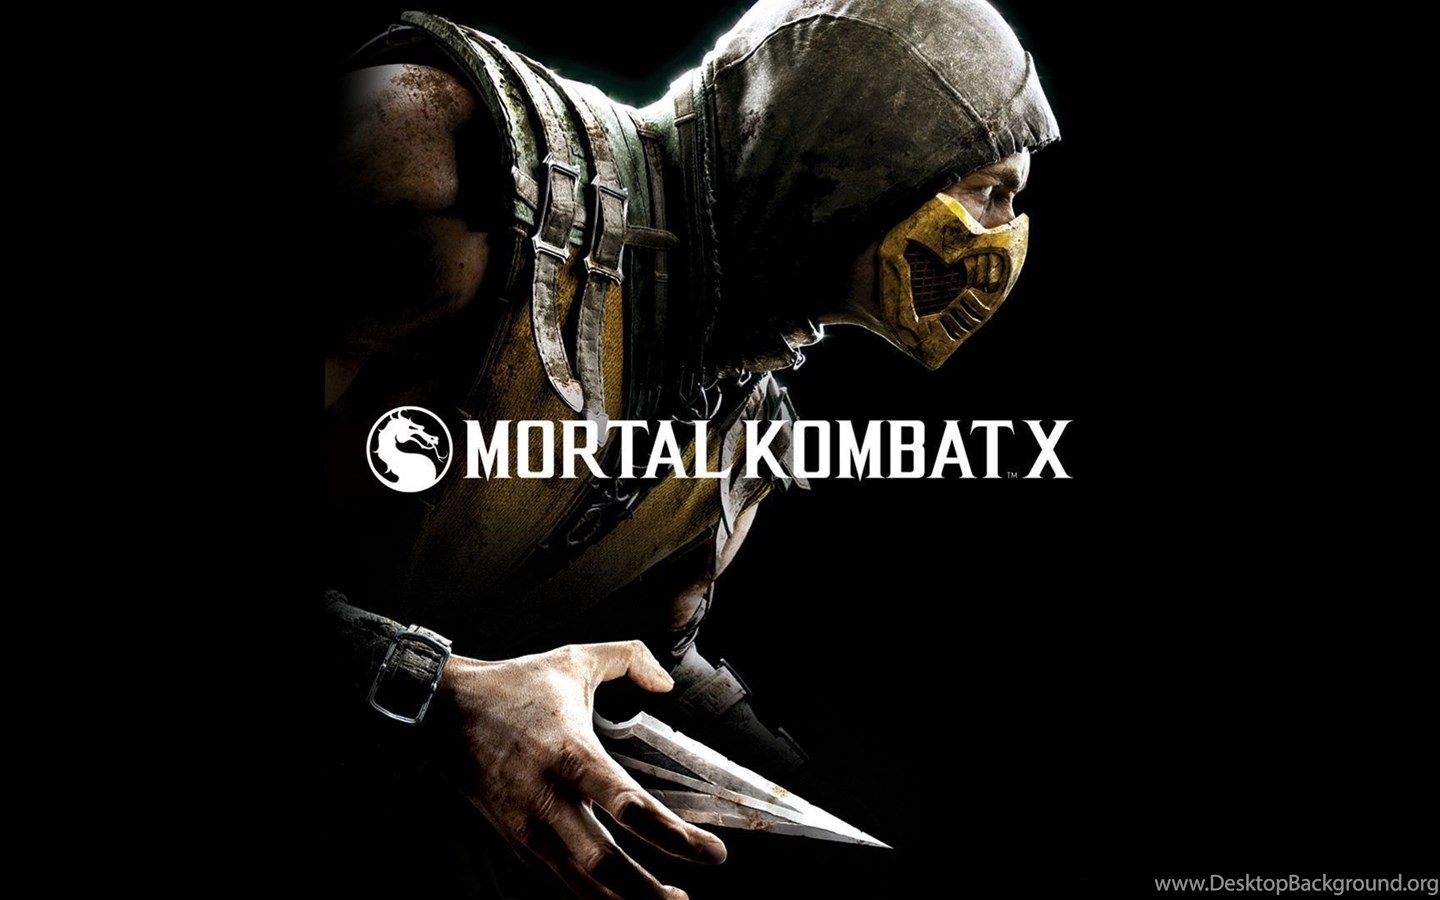 Scorpion Mortal Kombat X Game Wallpaper 1920x1080 Jpg Desktop